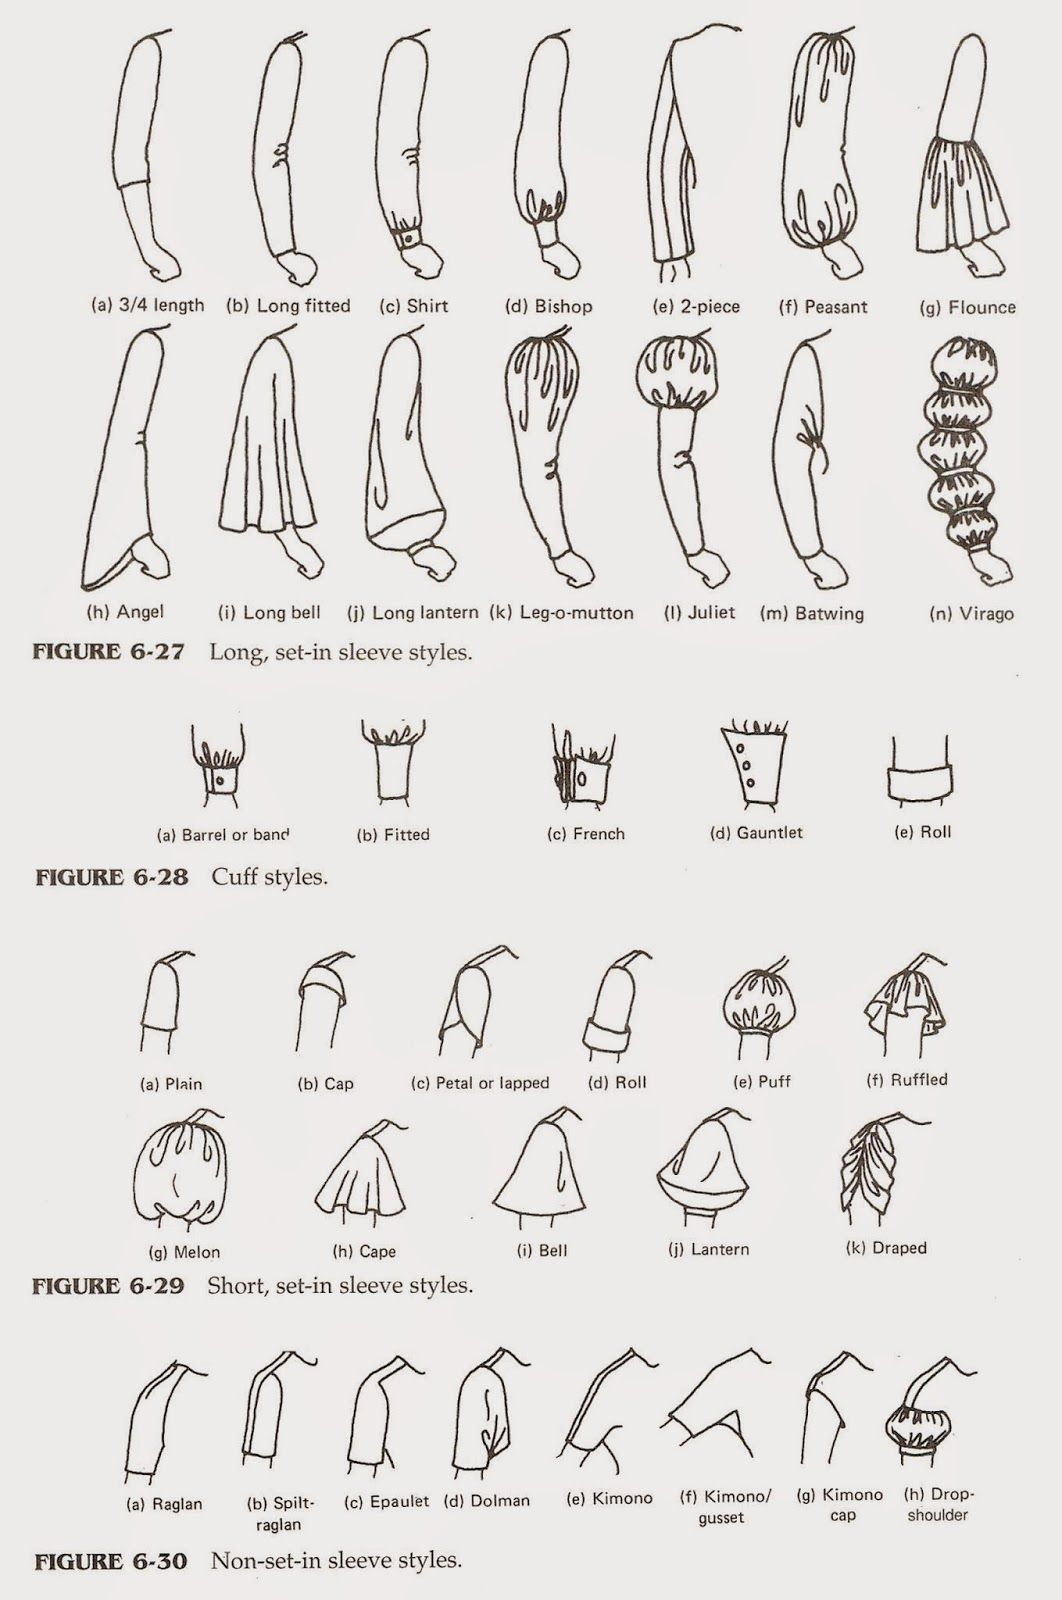 Tipos de mangas fashion terms fashion terminology sleeve types